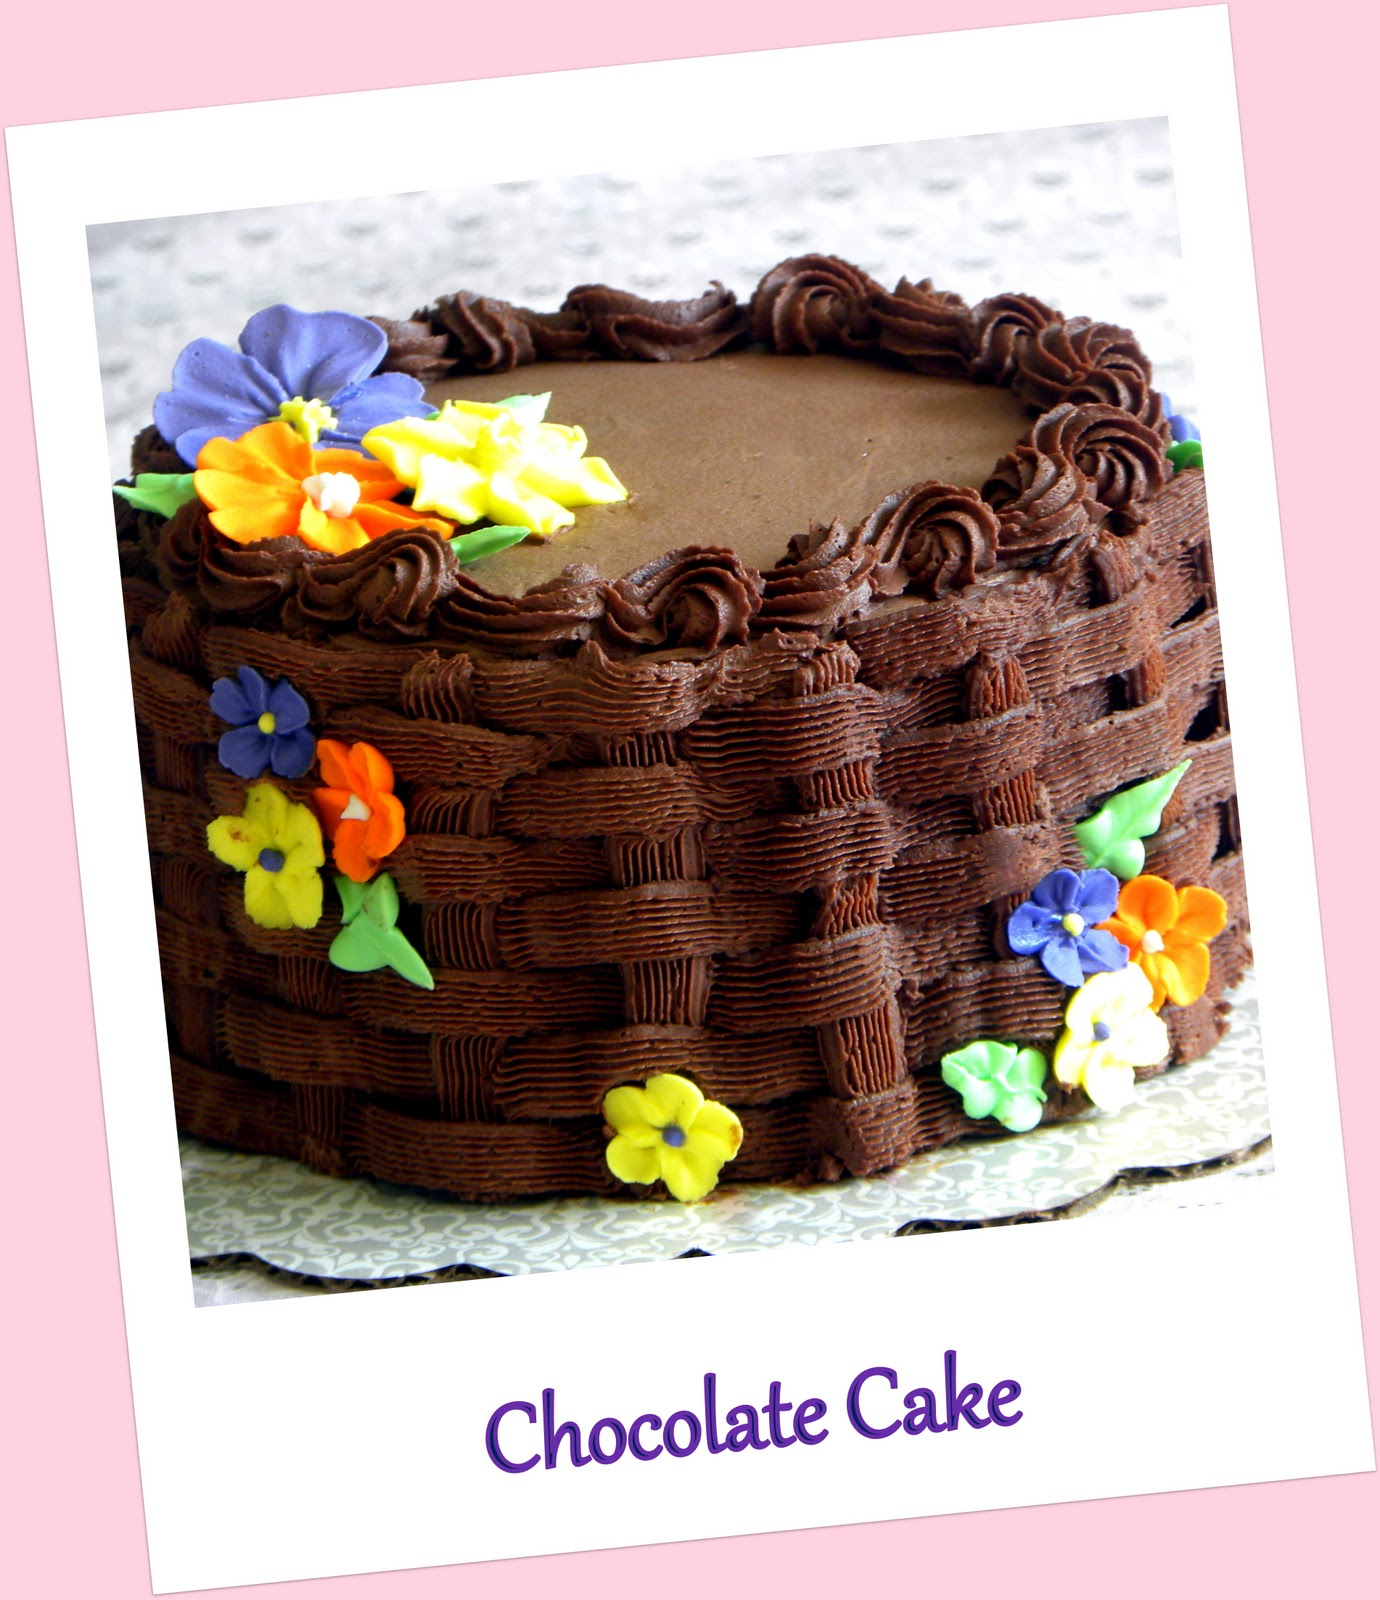 Wilton Cake Classes Uk : Tasty Treats: Eggless Chocolate Cake with Chocolate ...